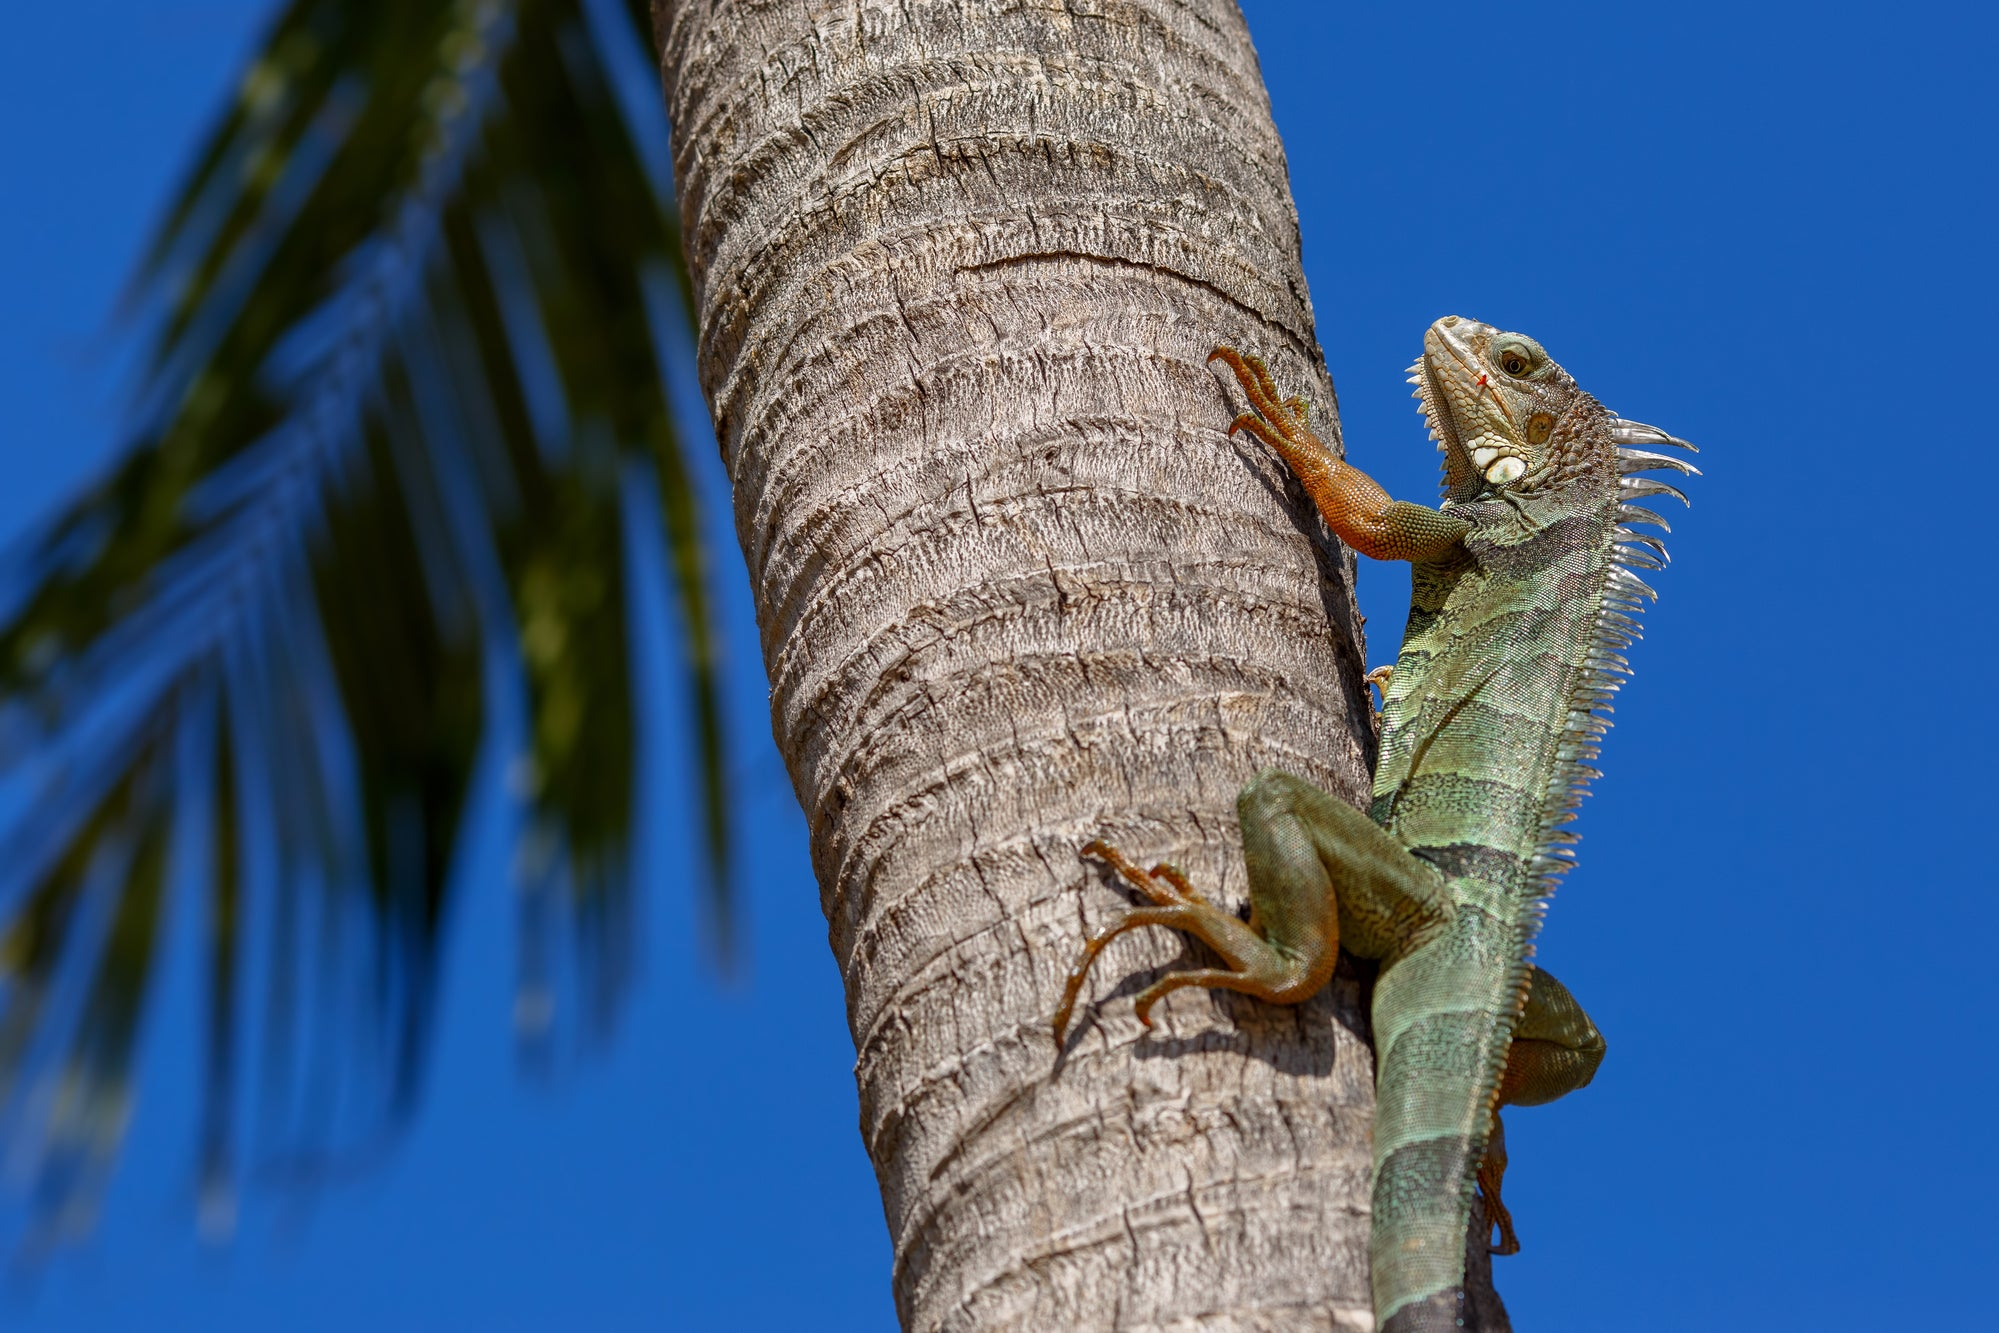 A green iguana on a palm tree trunk in Key West, Florida.